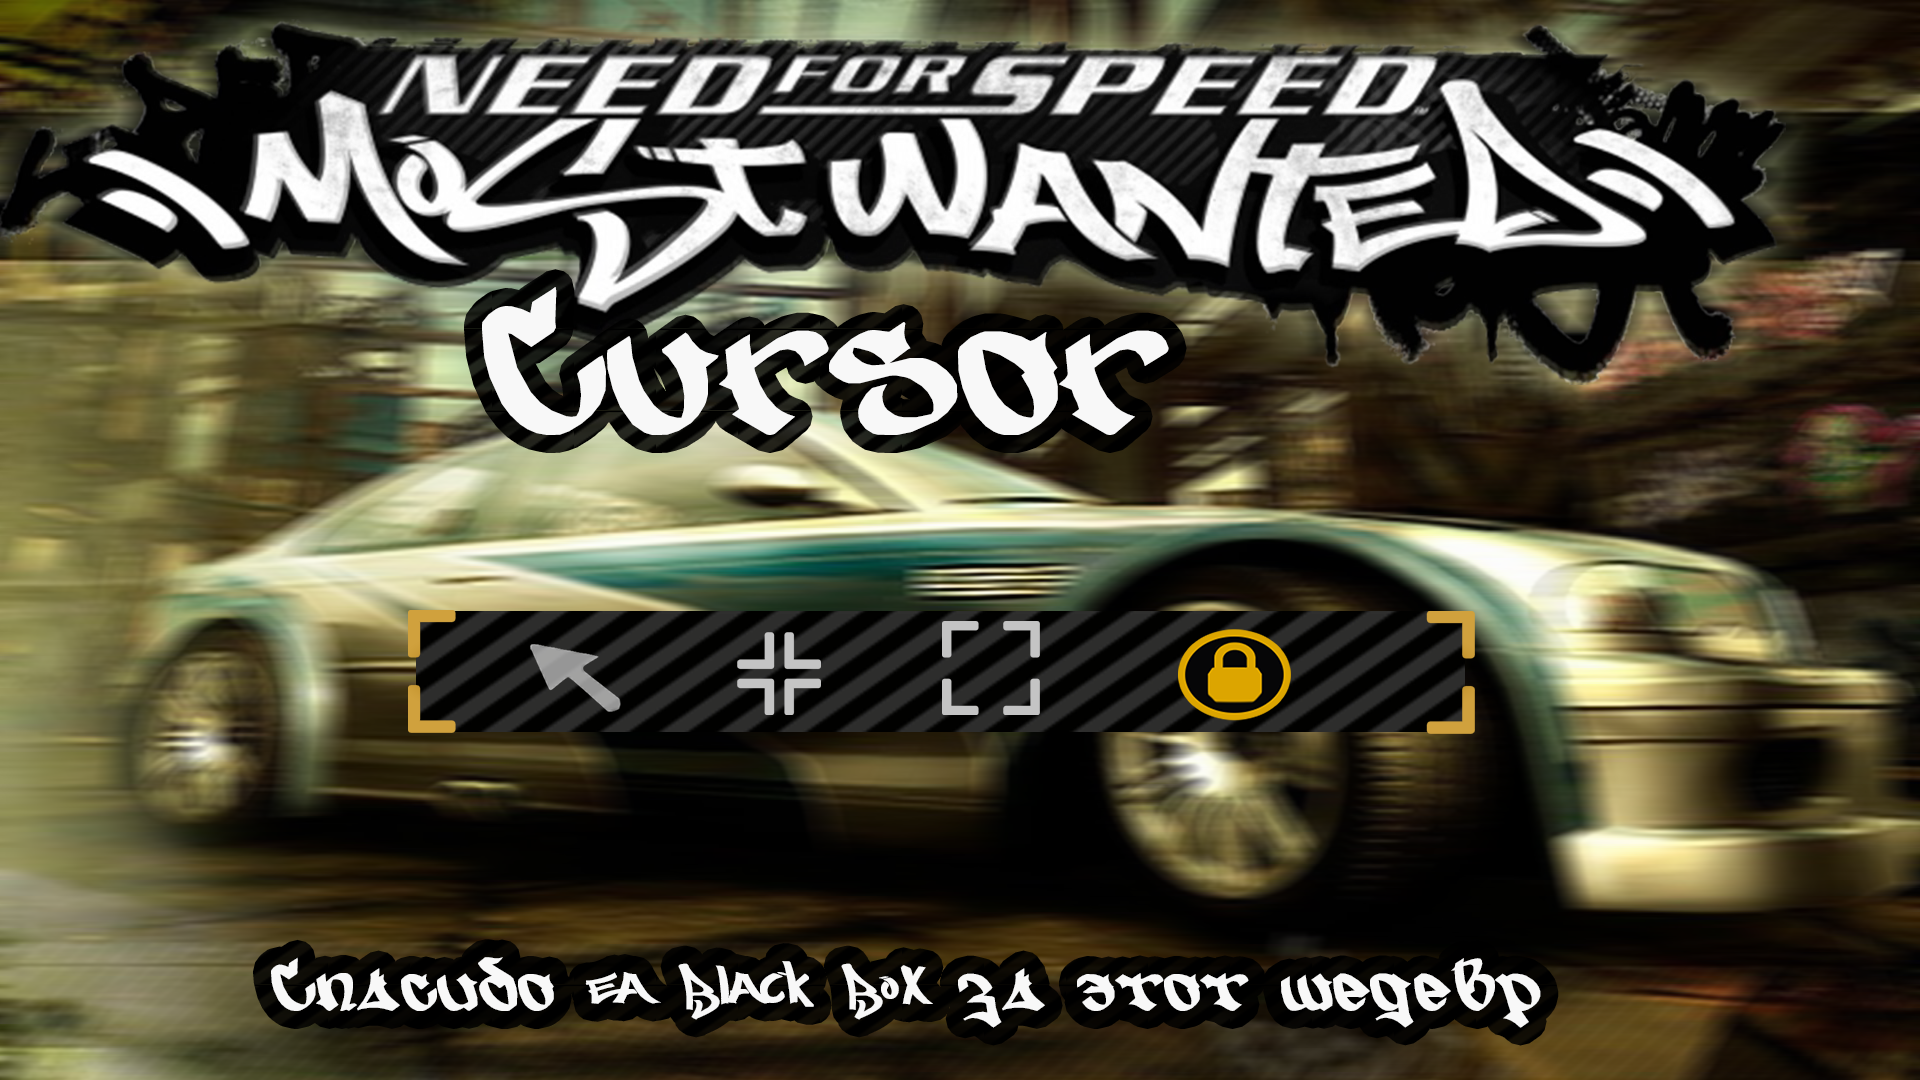 NFS: Most Wanted (2005) Cursor